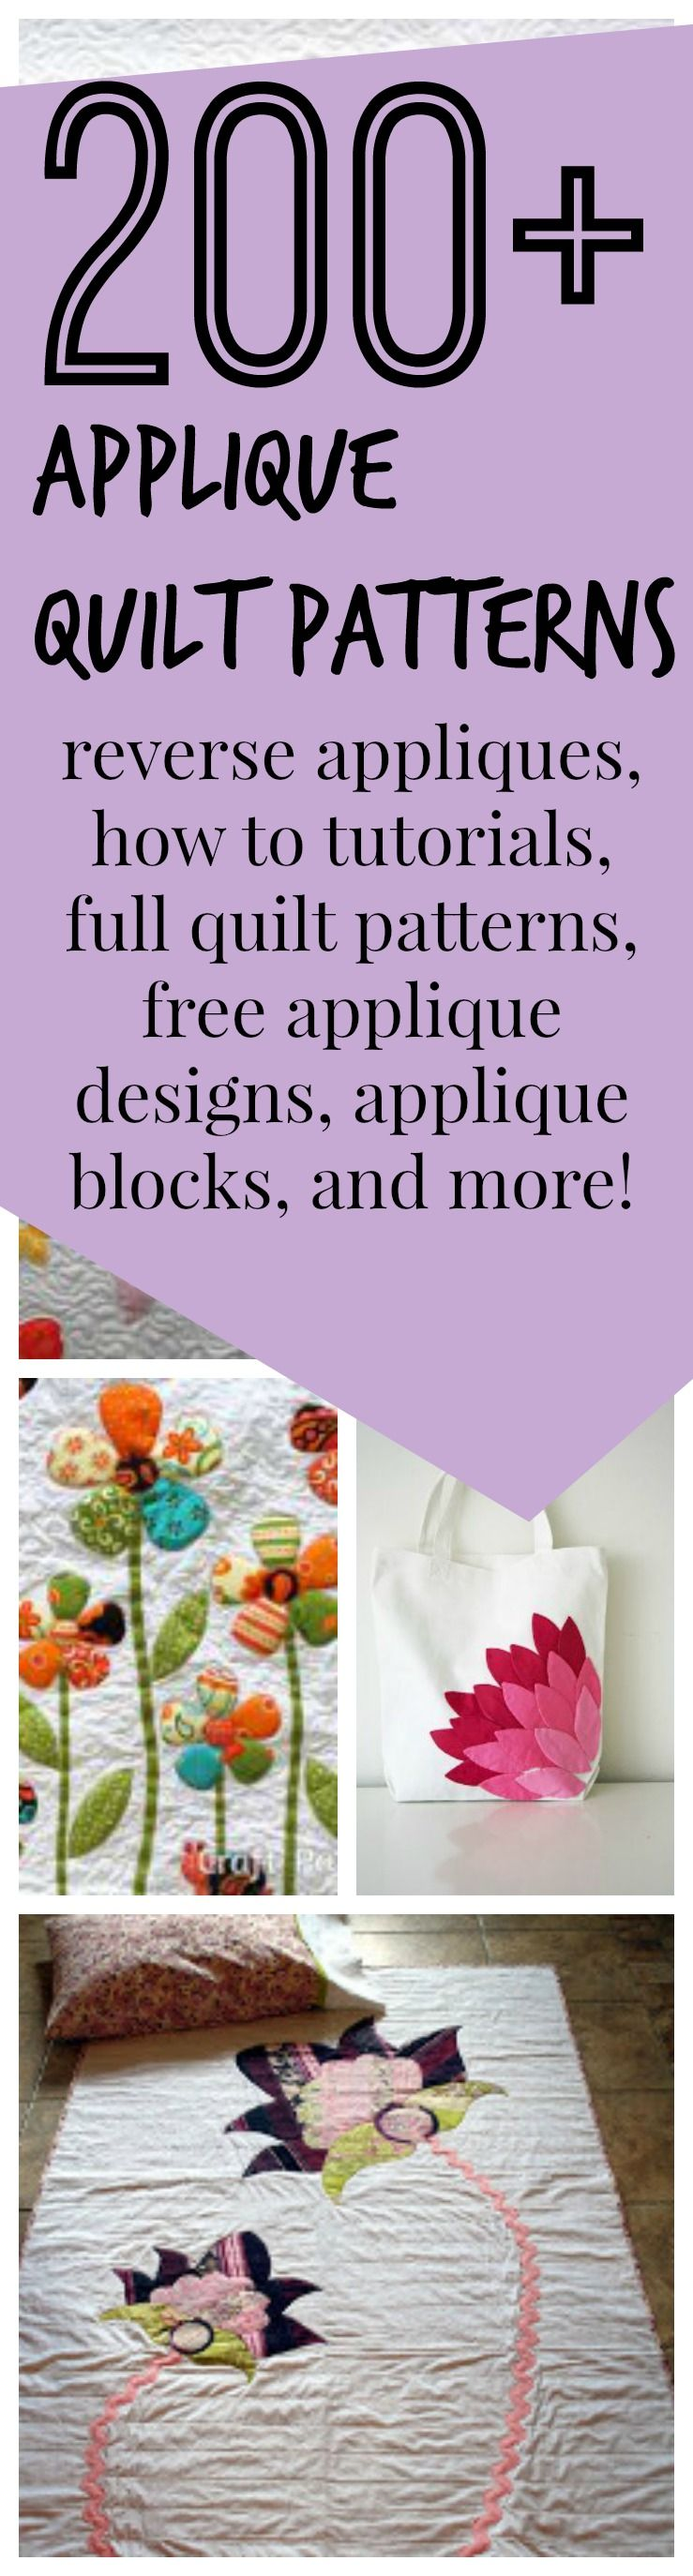 200 + Free Applique Designs and Applique Quilt Patterns - Learn how